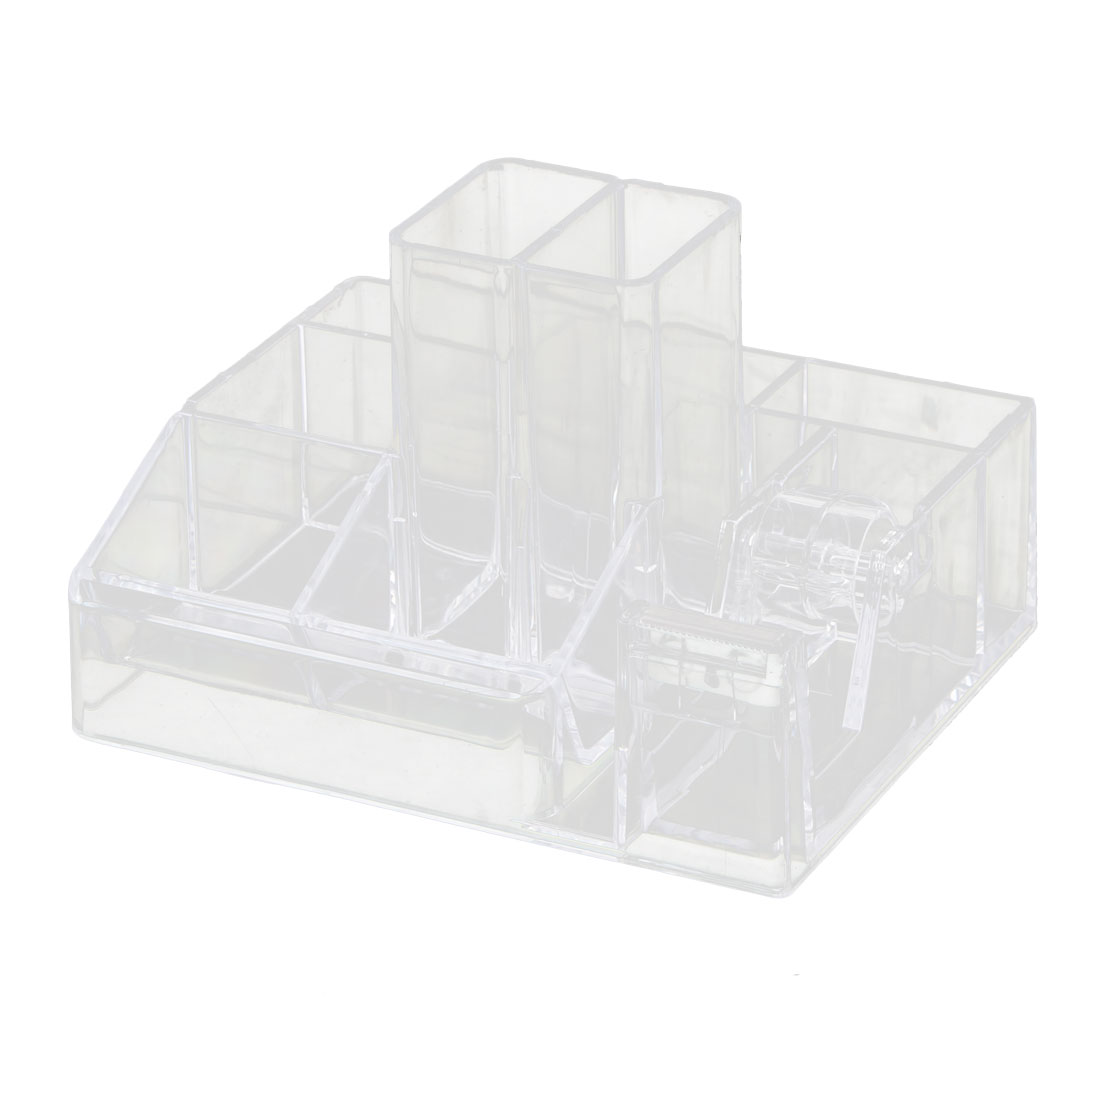 Home Office Tabletop Plastic 7 Compartments One Tape Roller Pencil Pen Holder